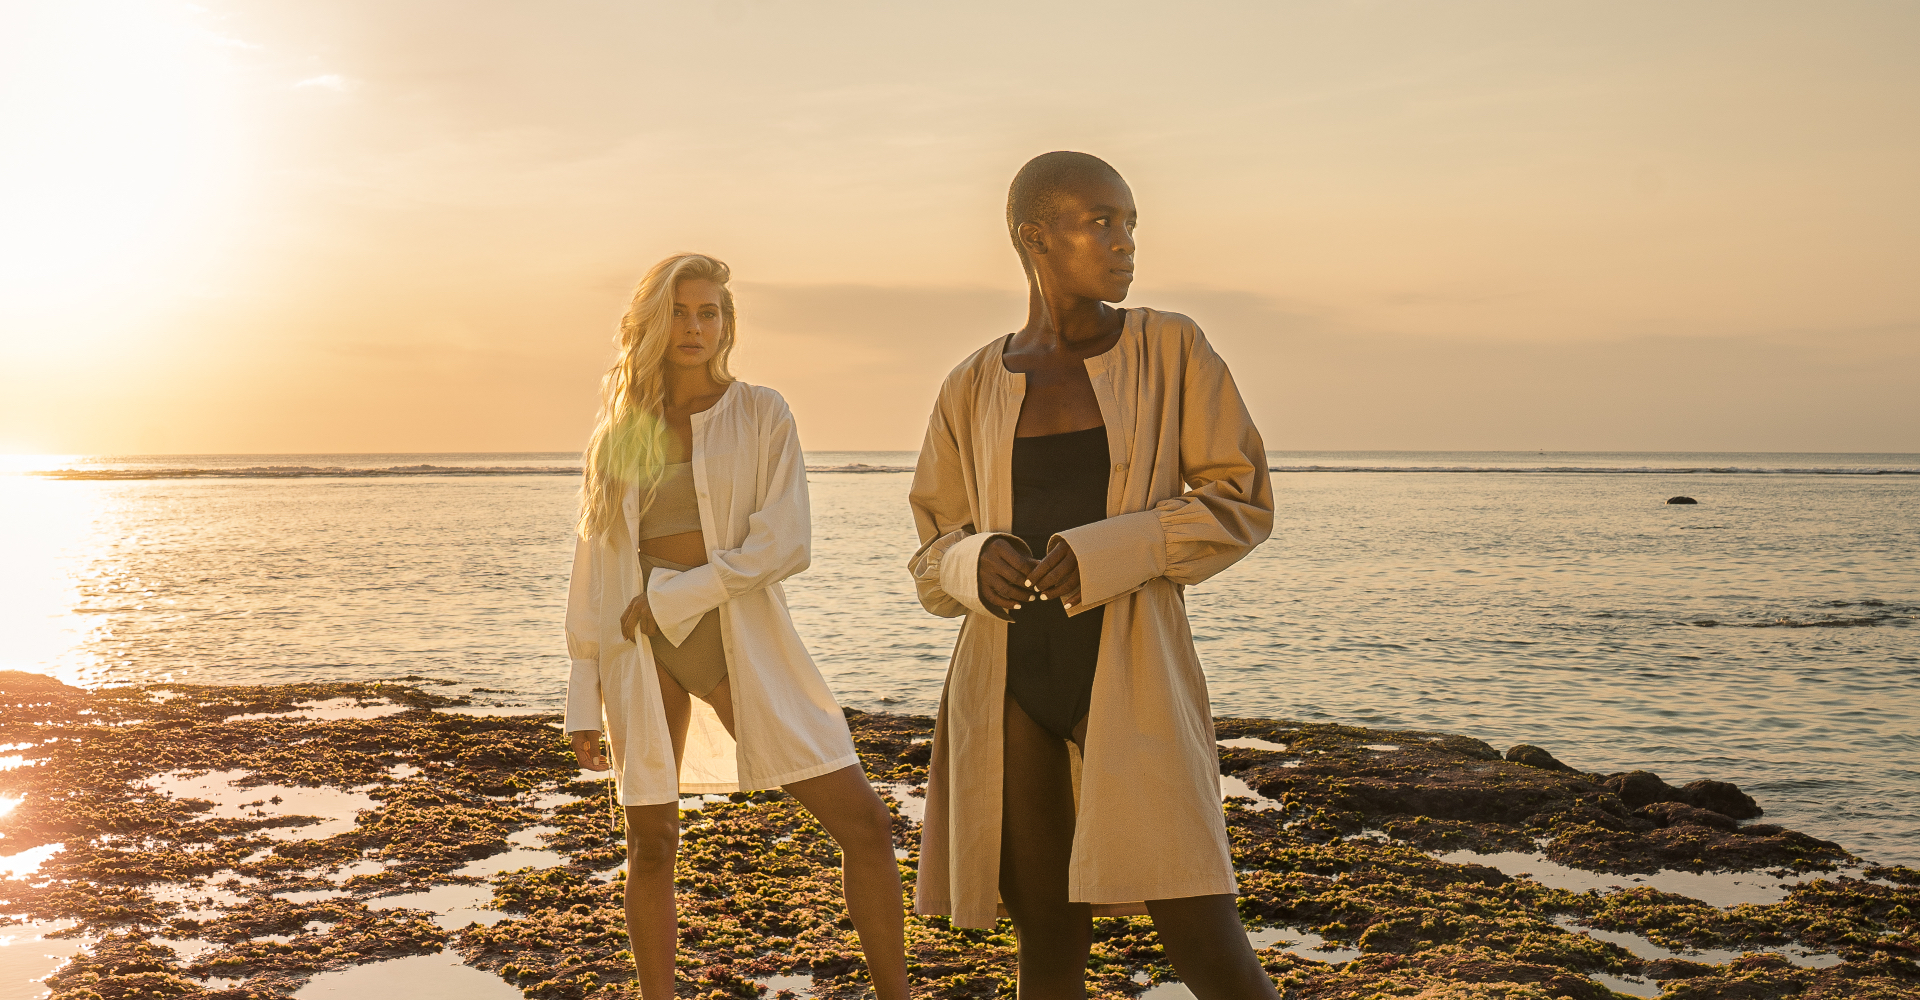 A Momentary Escape - Resortwear Collection by 1 People